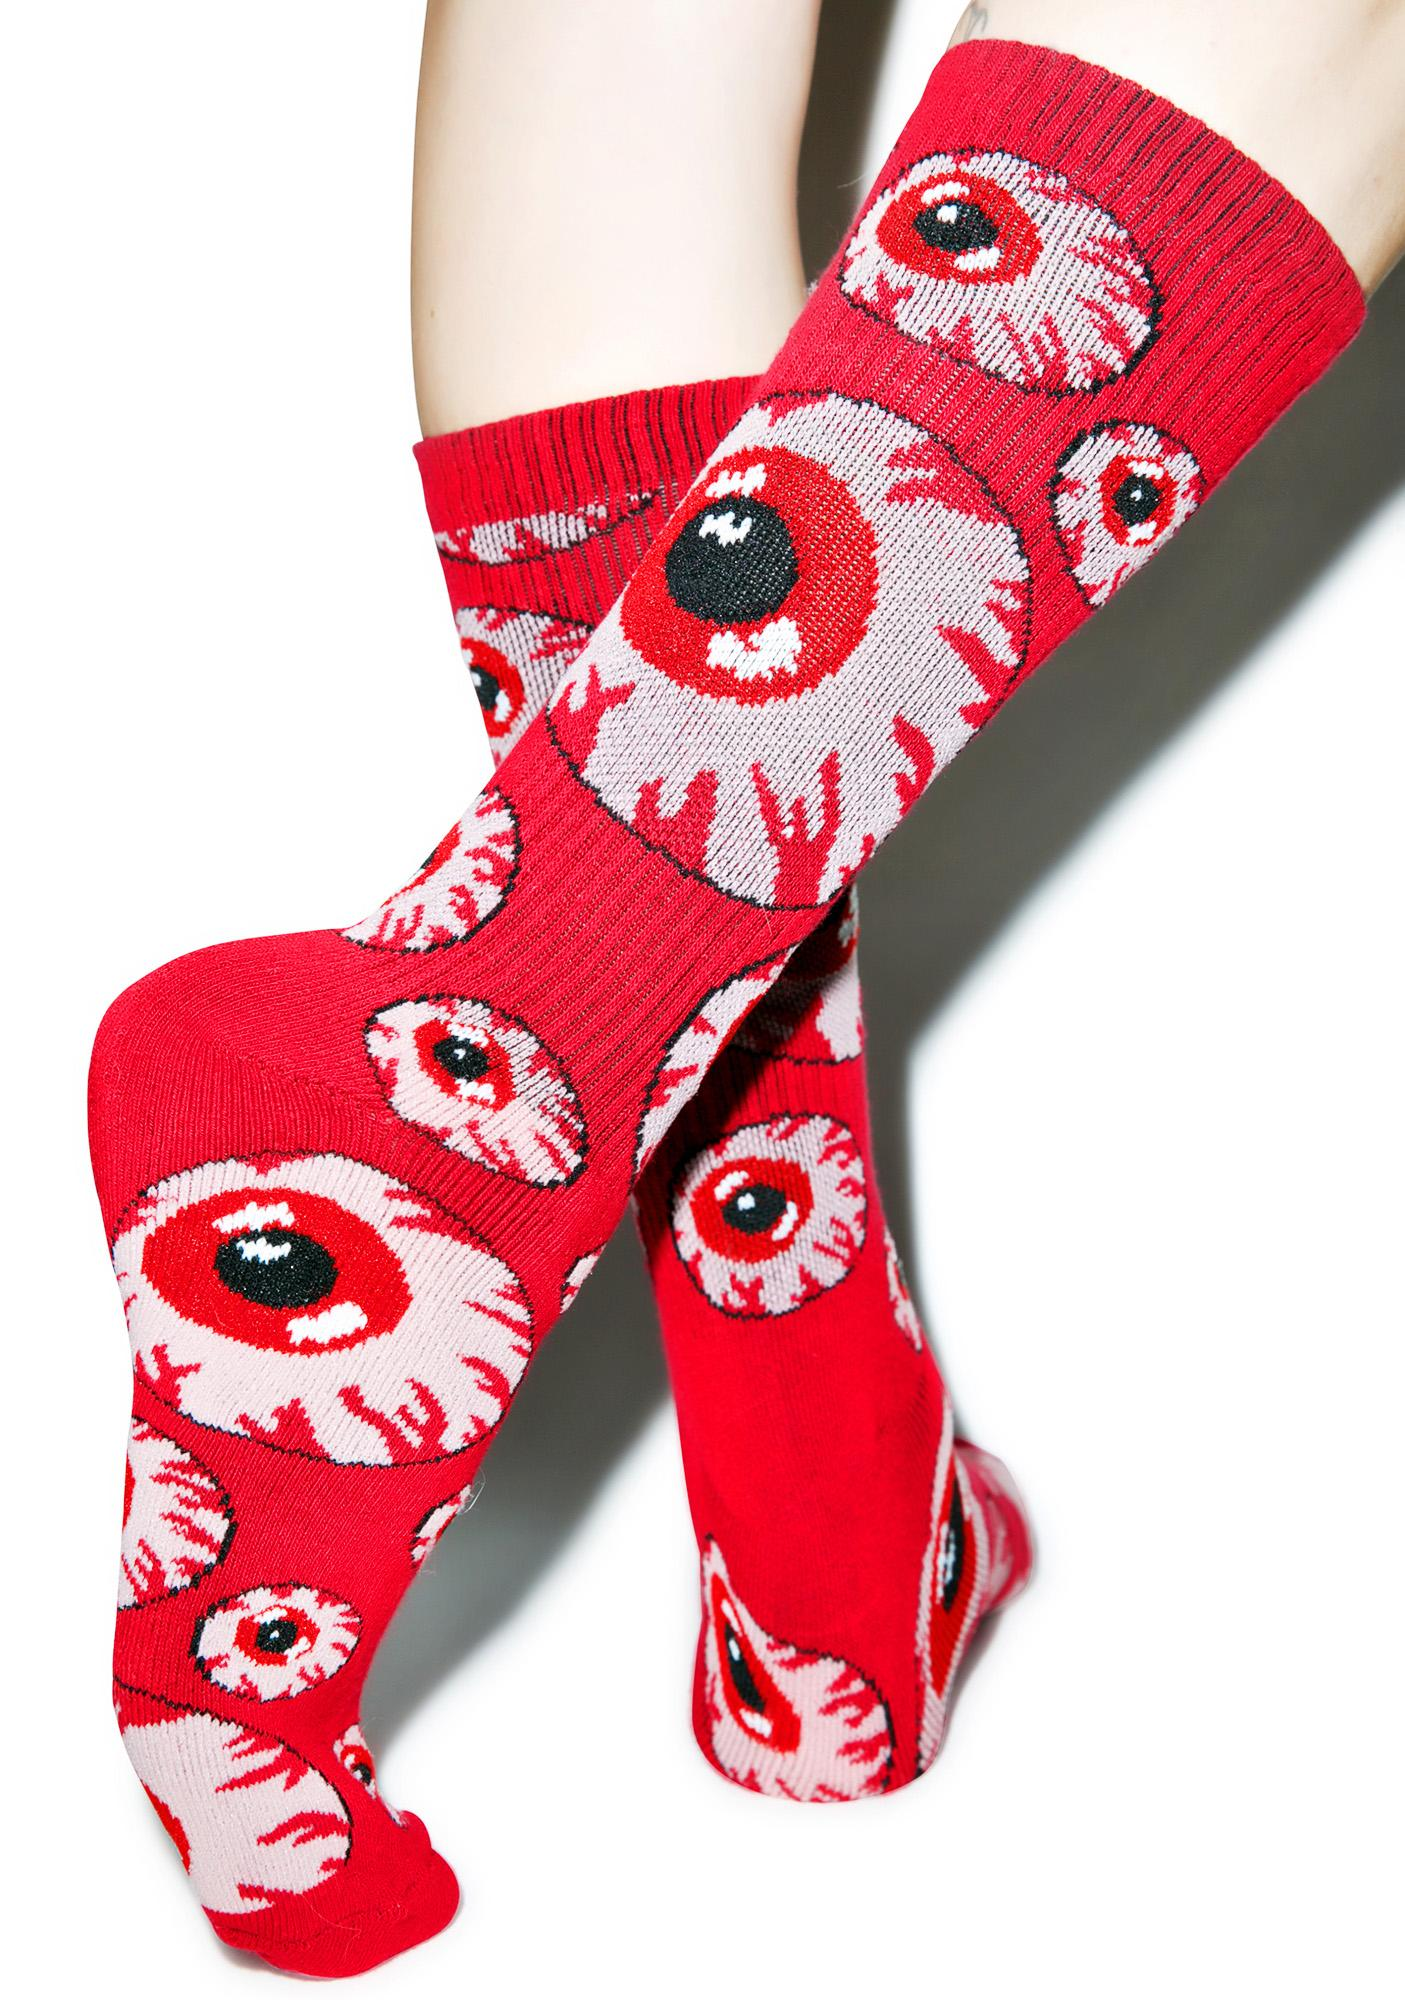 Mishka Tonal Keep Watch Pattern Socks